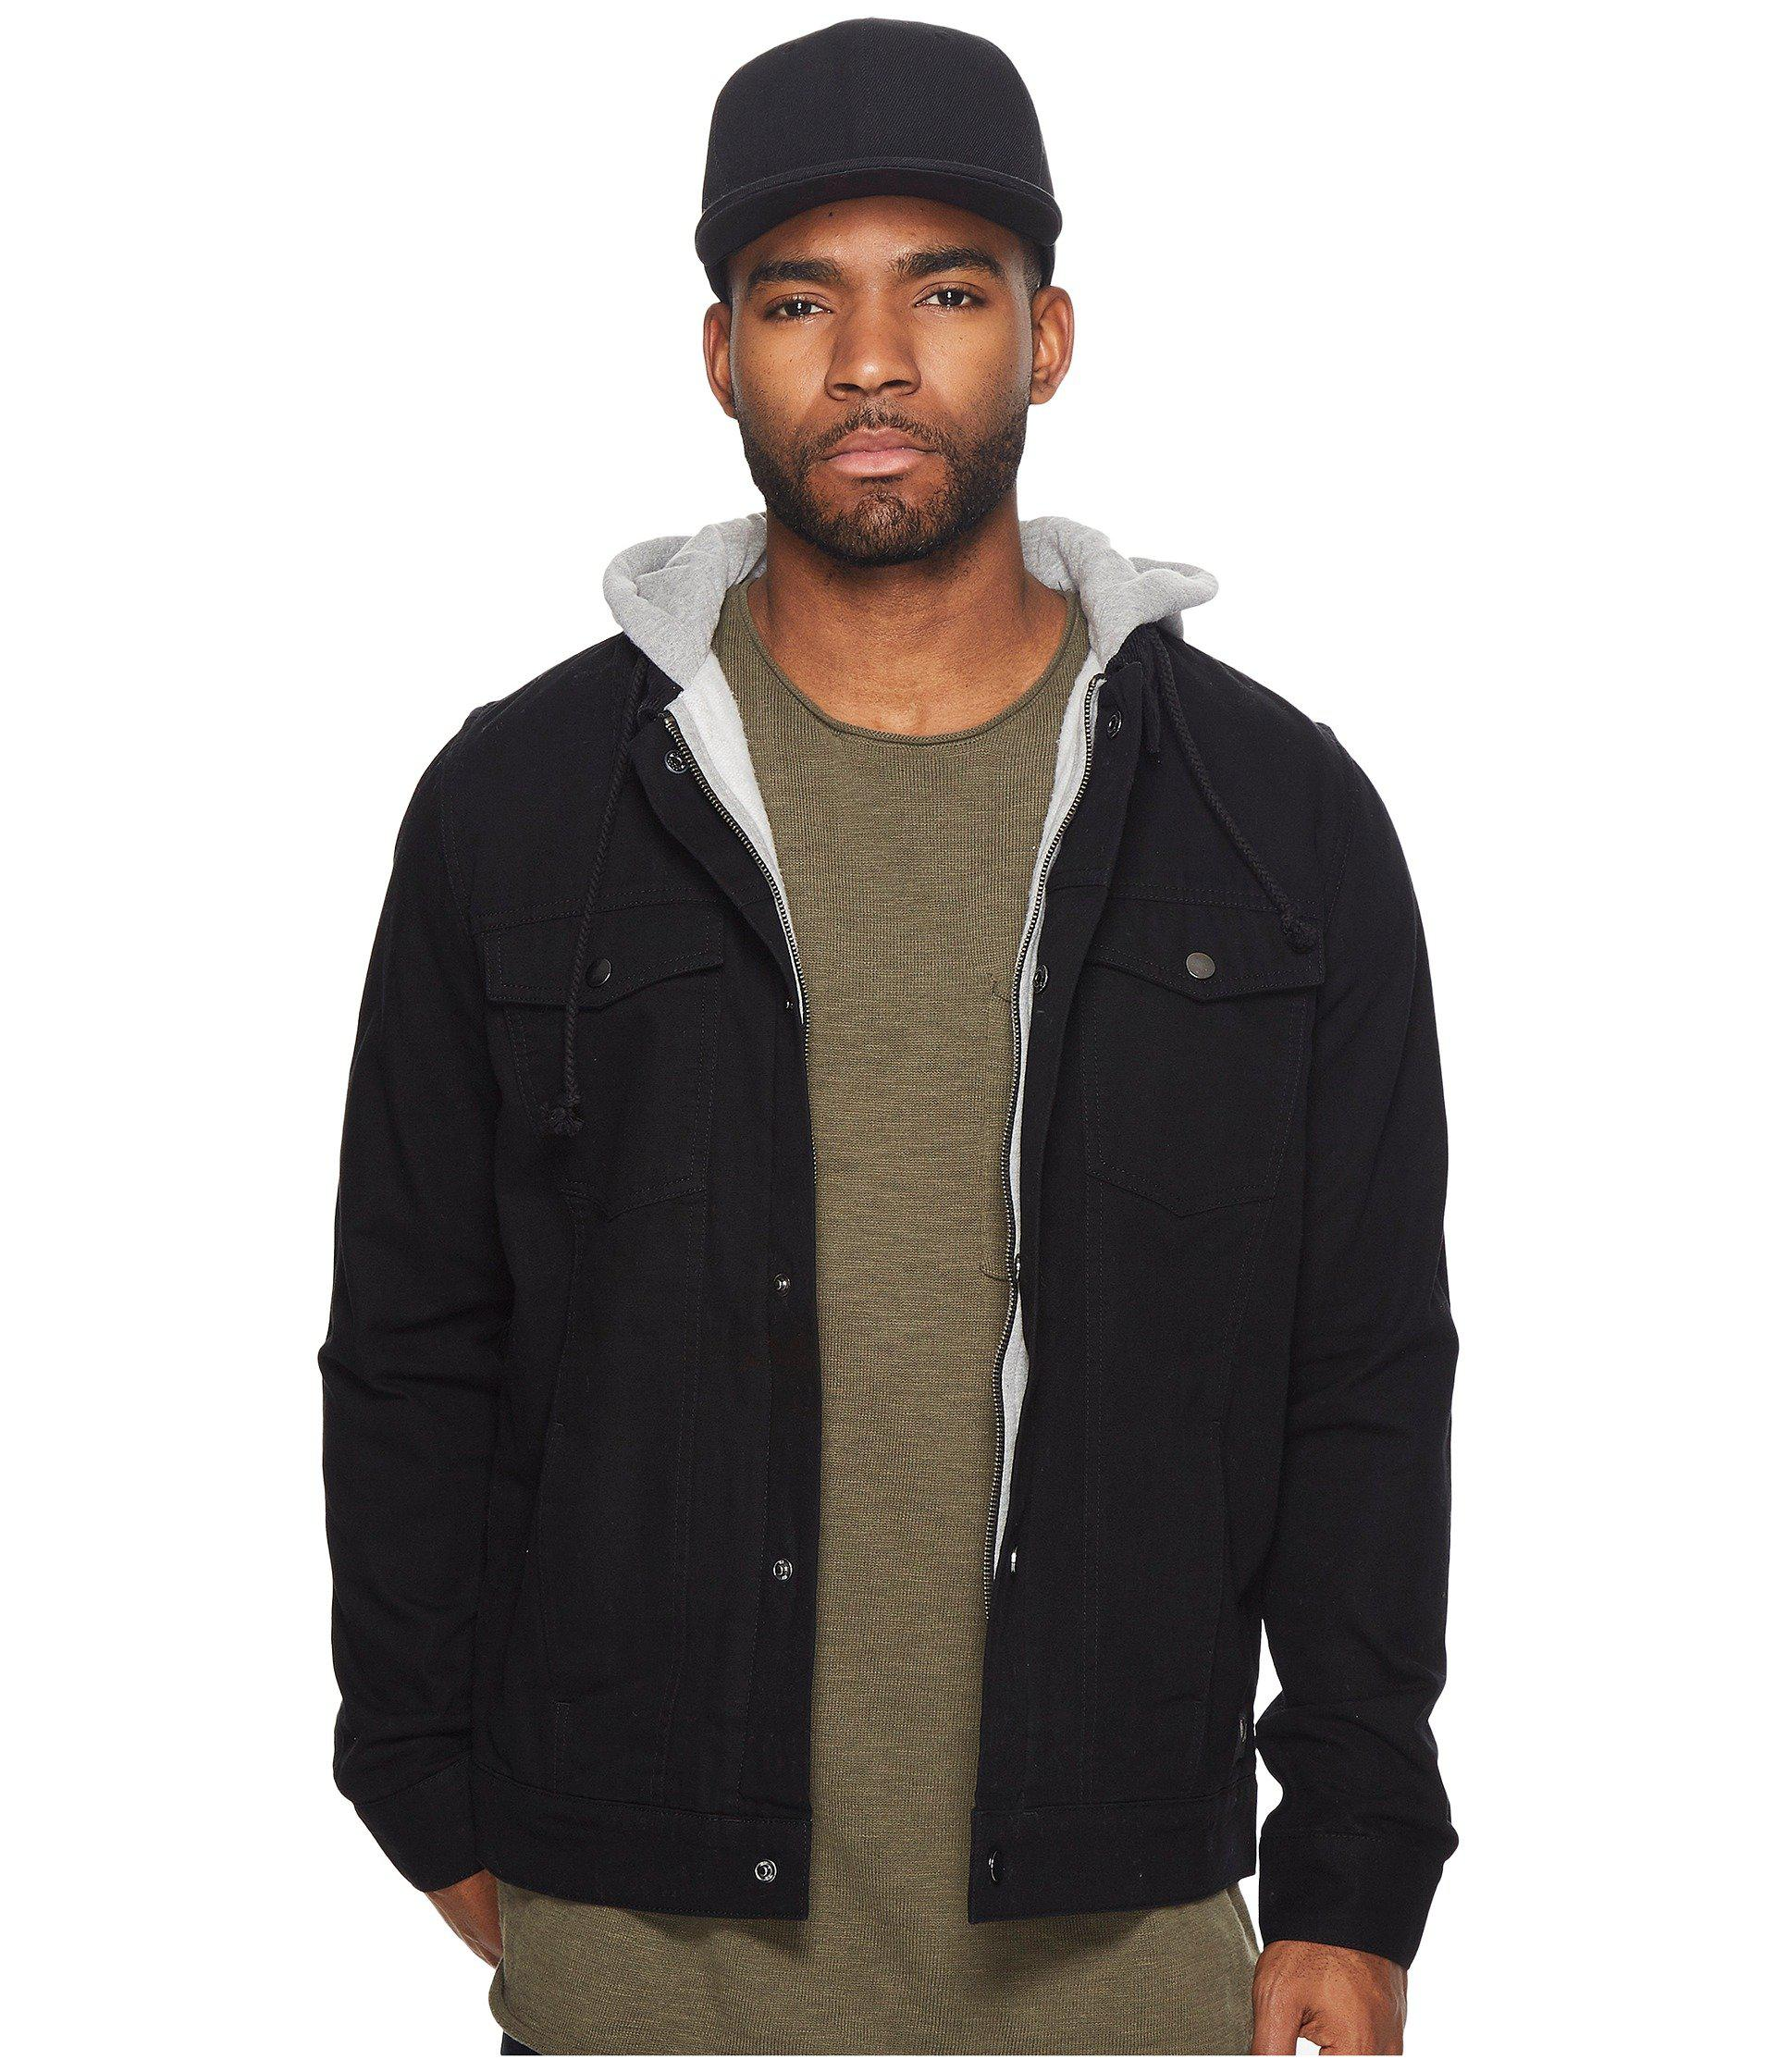 dbca094455 Lyst - Vans Av Edict Ii Jacket in Black for Men